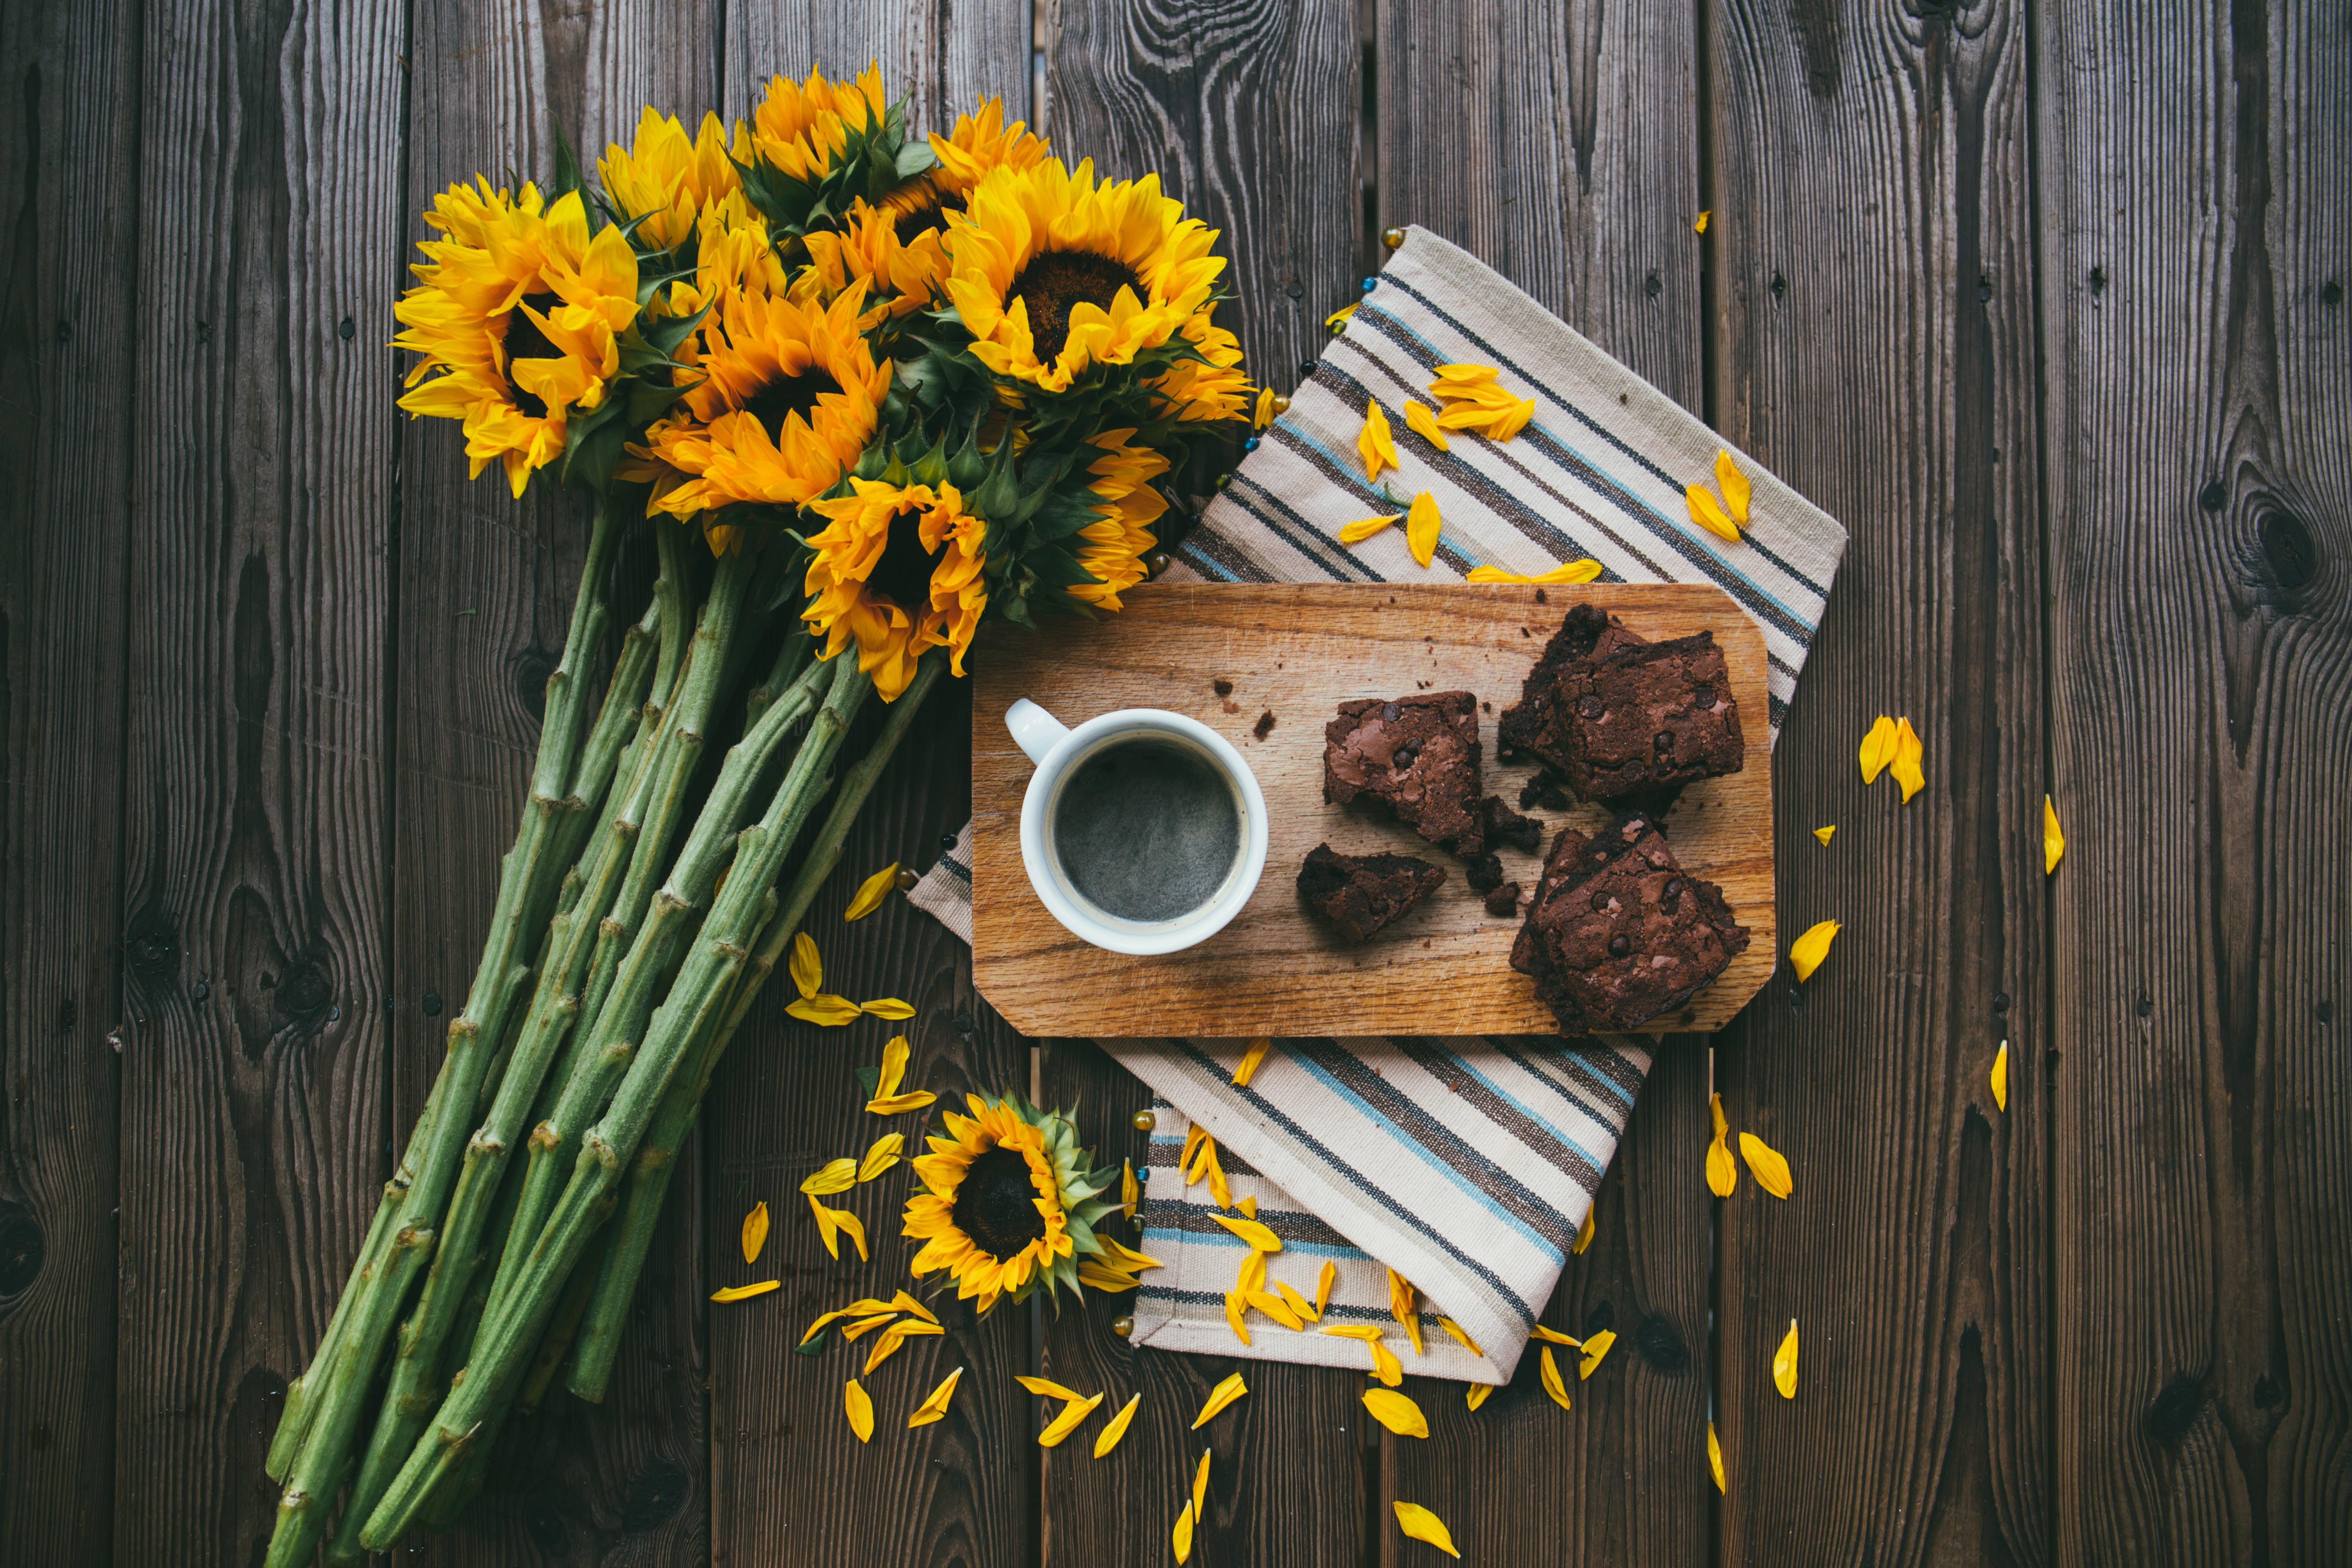 flat lay photography of cooked meat beside mug and bouquet of sunflowers